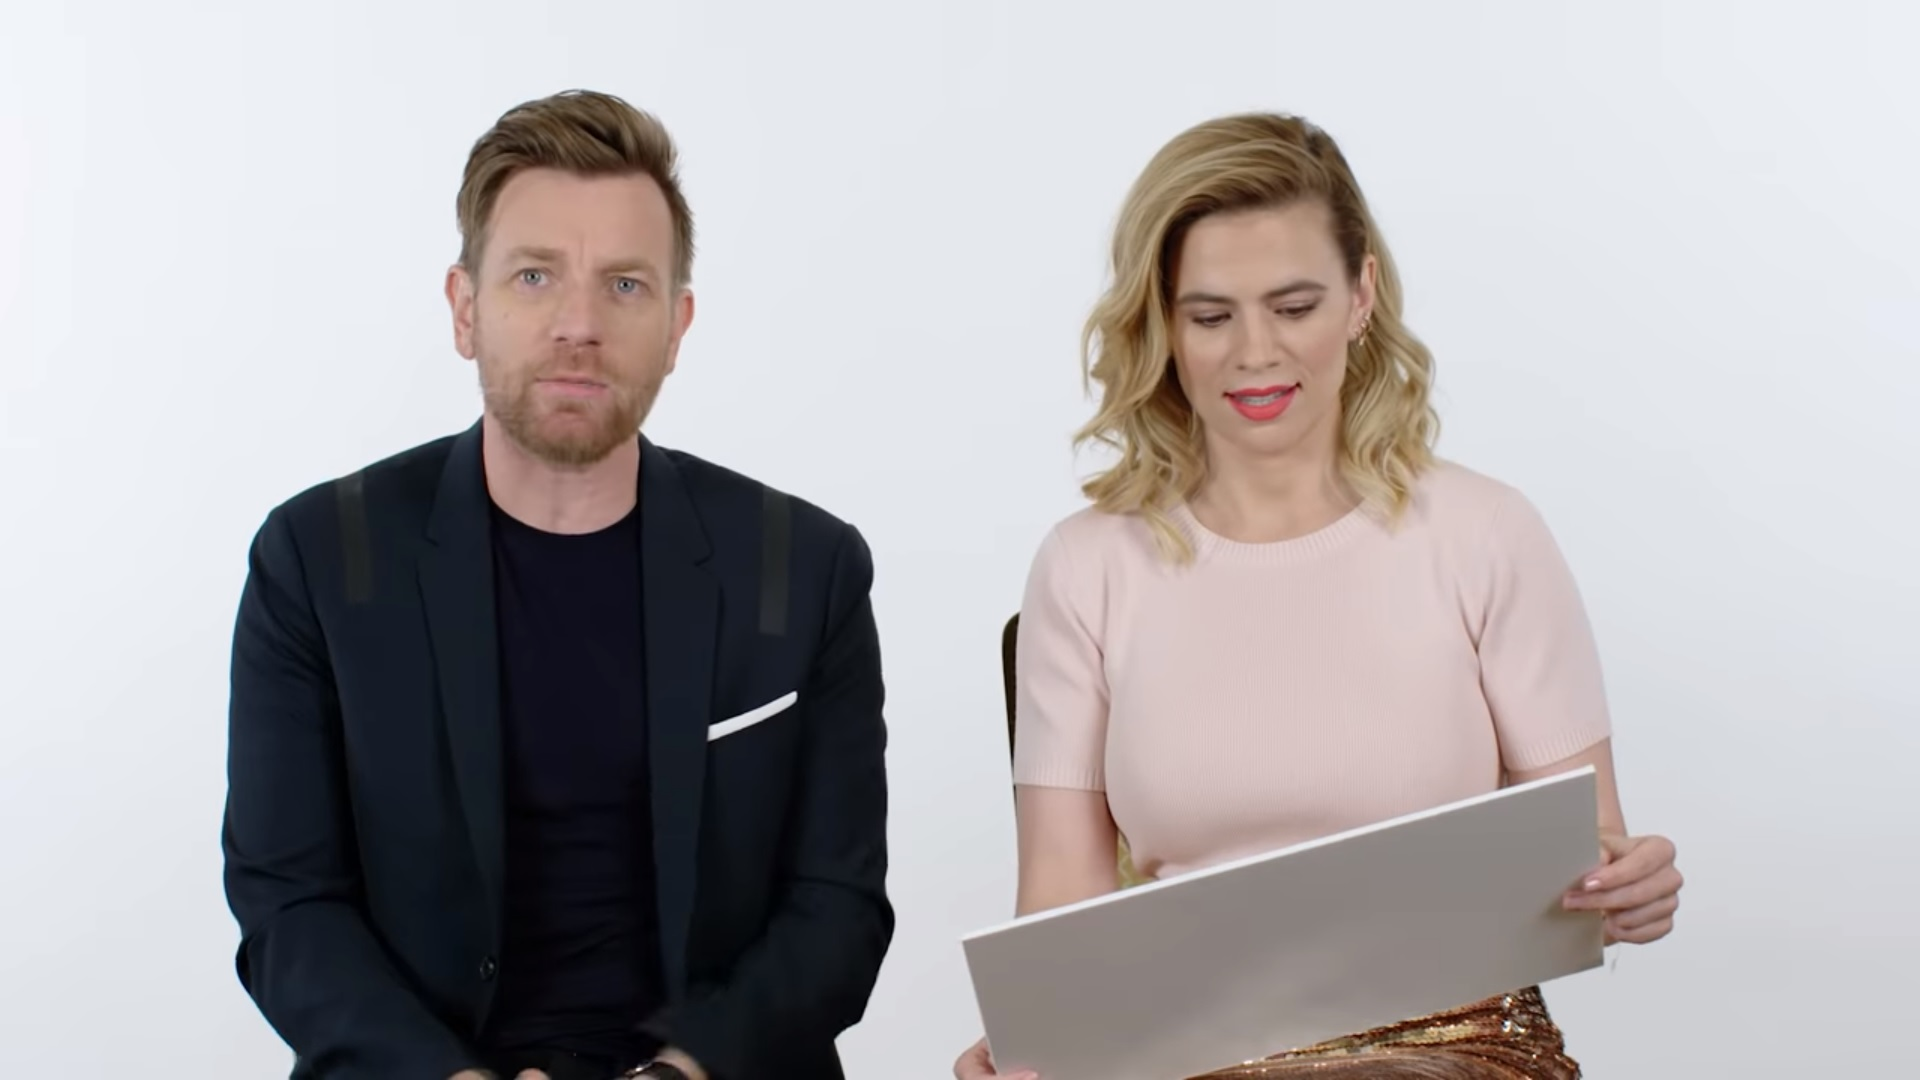 watch-ewan-mcgregor-and-hayley-atwell-answer-the-webs-most-searched-questions-social.jpg